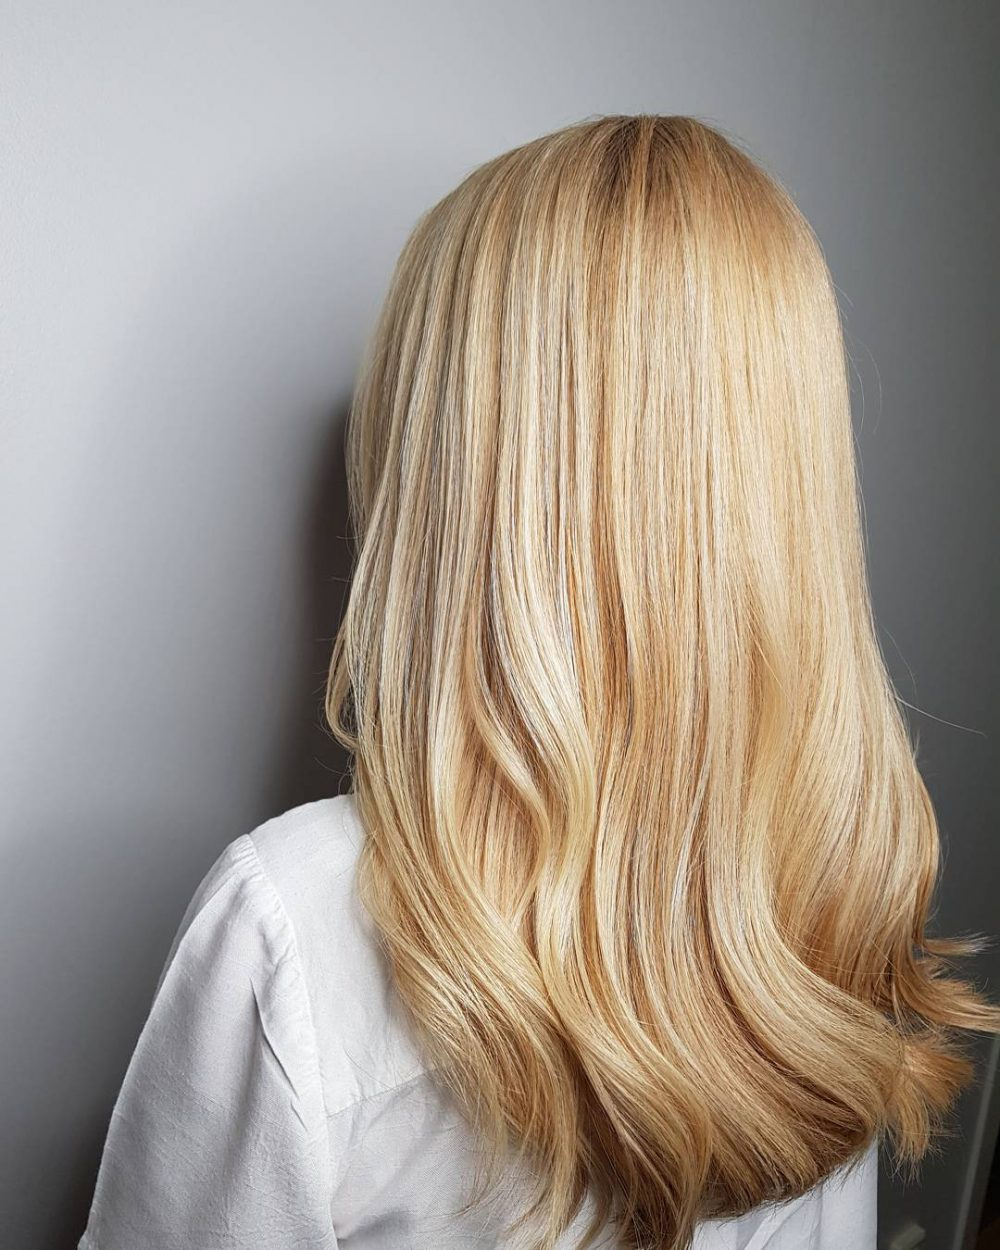 Luxurious & Natural hairstyle